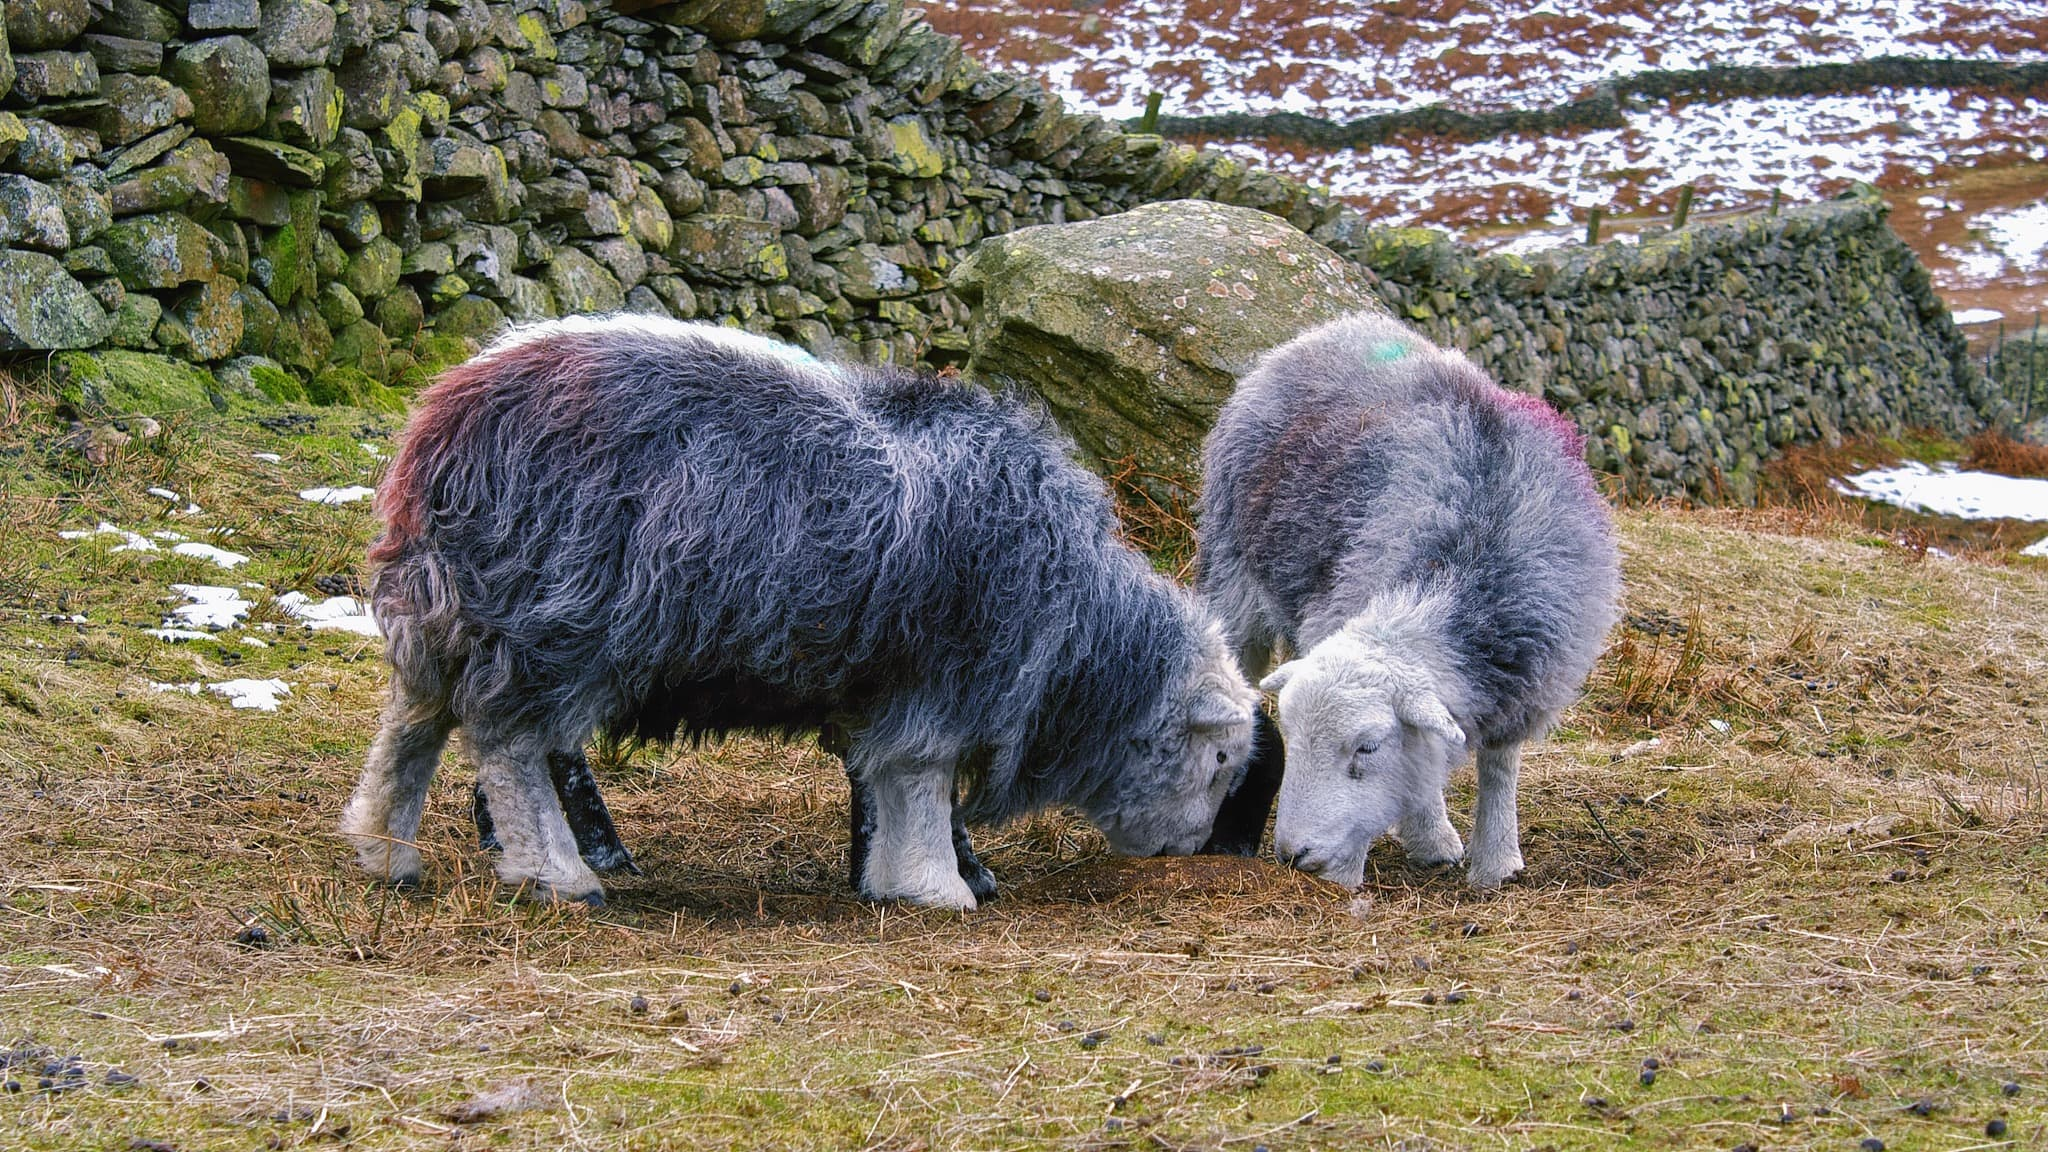 Herdwicks grazing in the Lake District. Photo by Alexander Baxevanis, licensed CC-BY-2.0